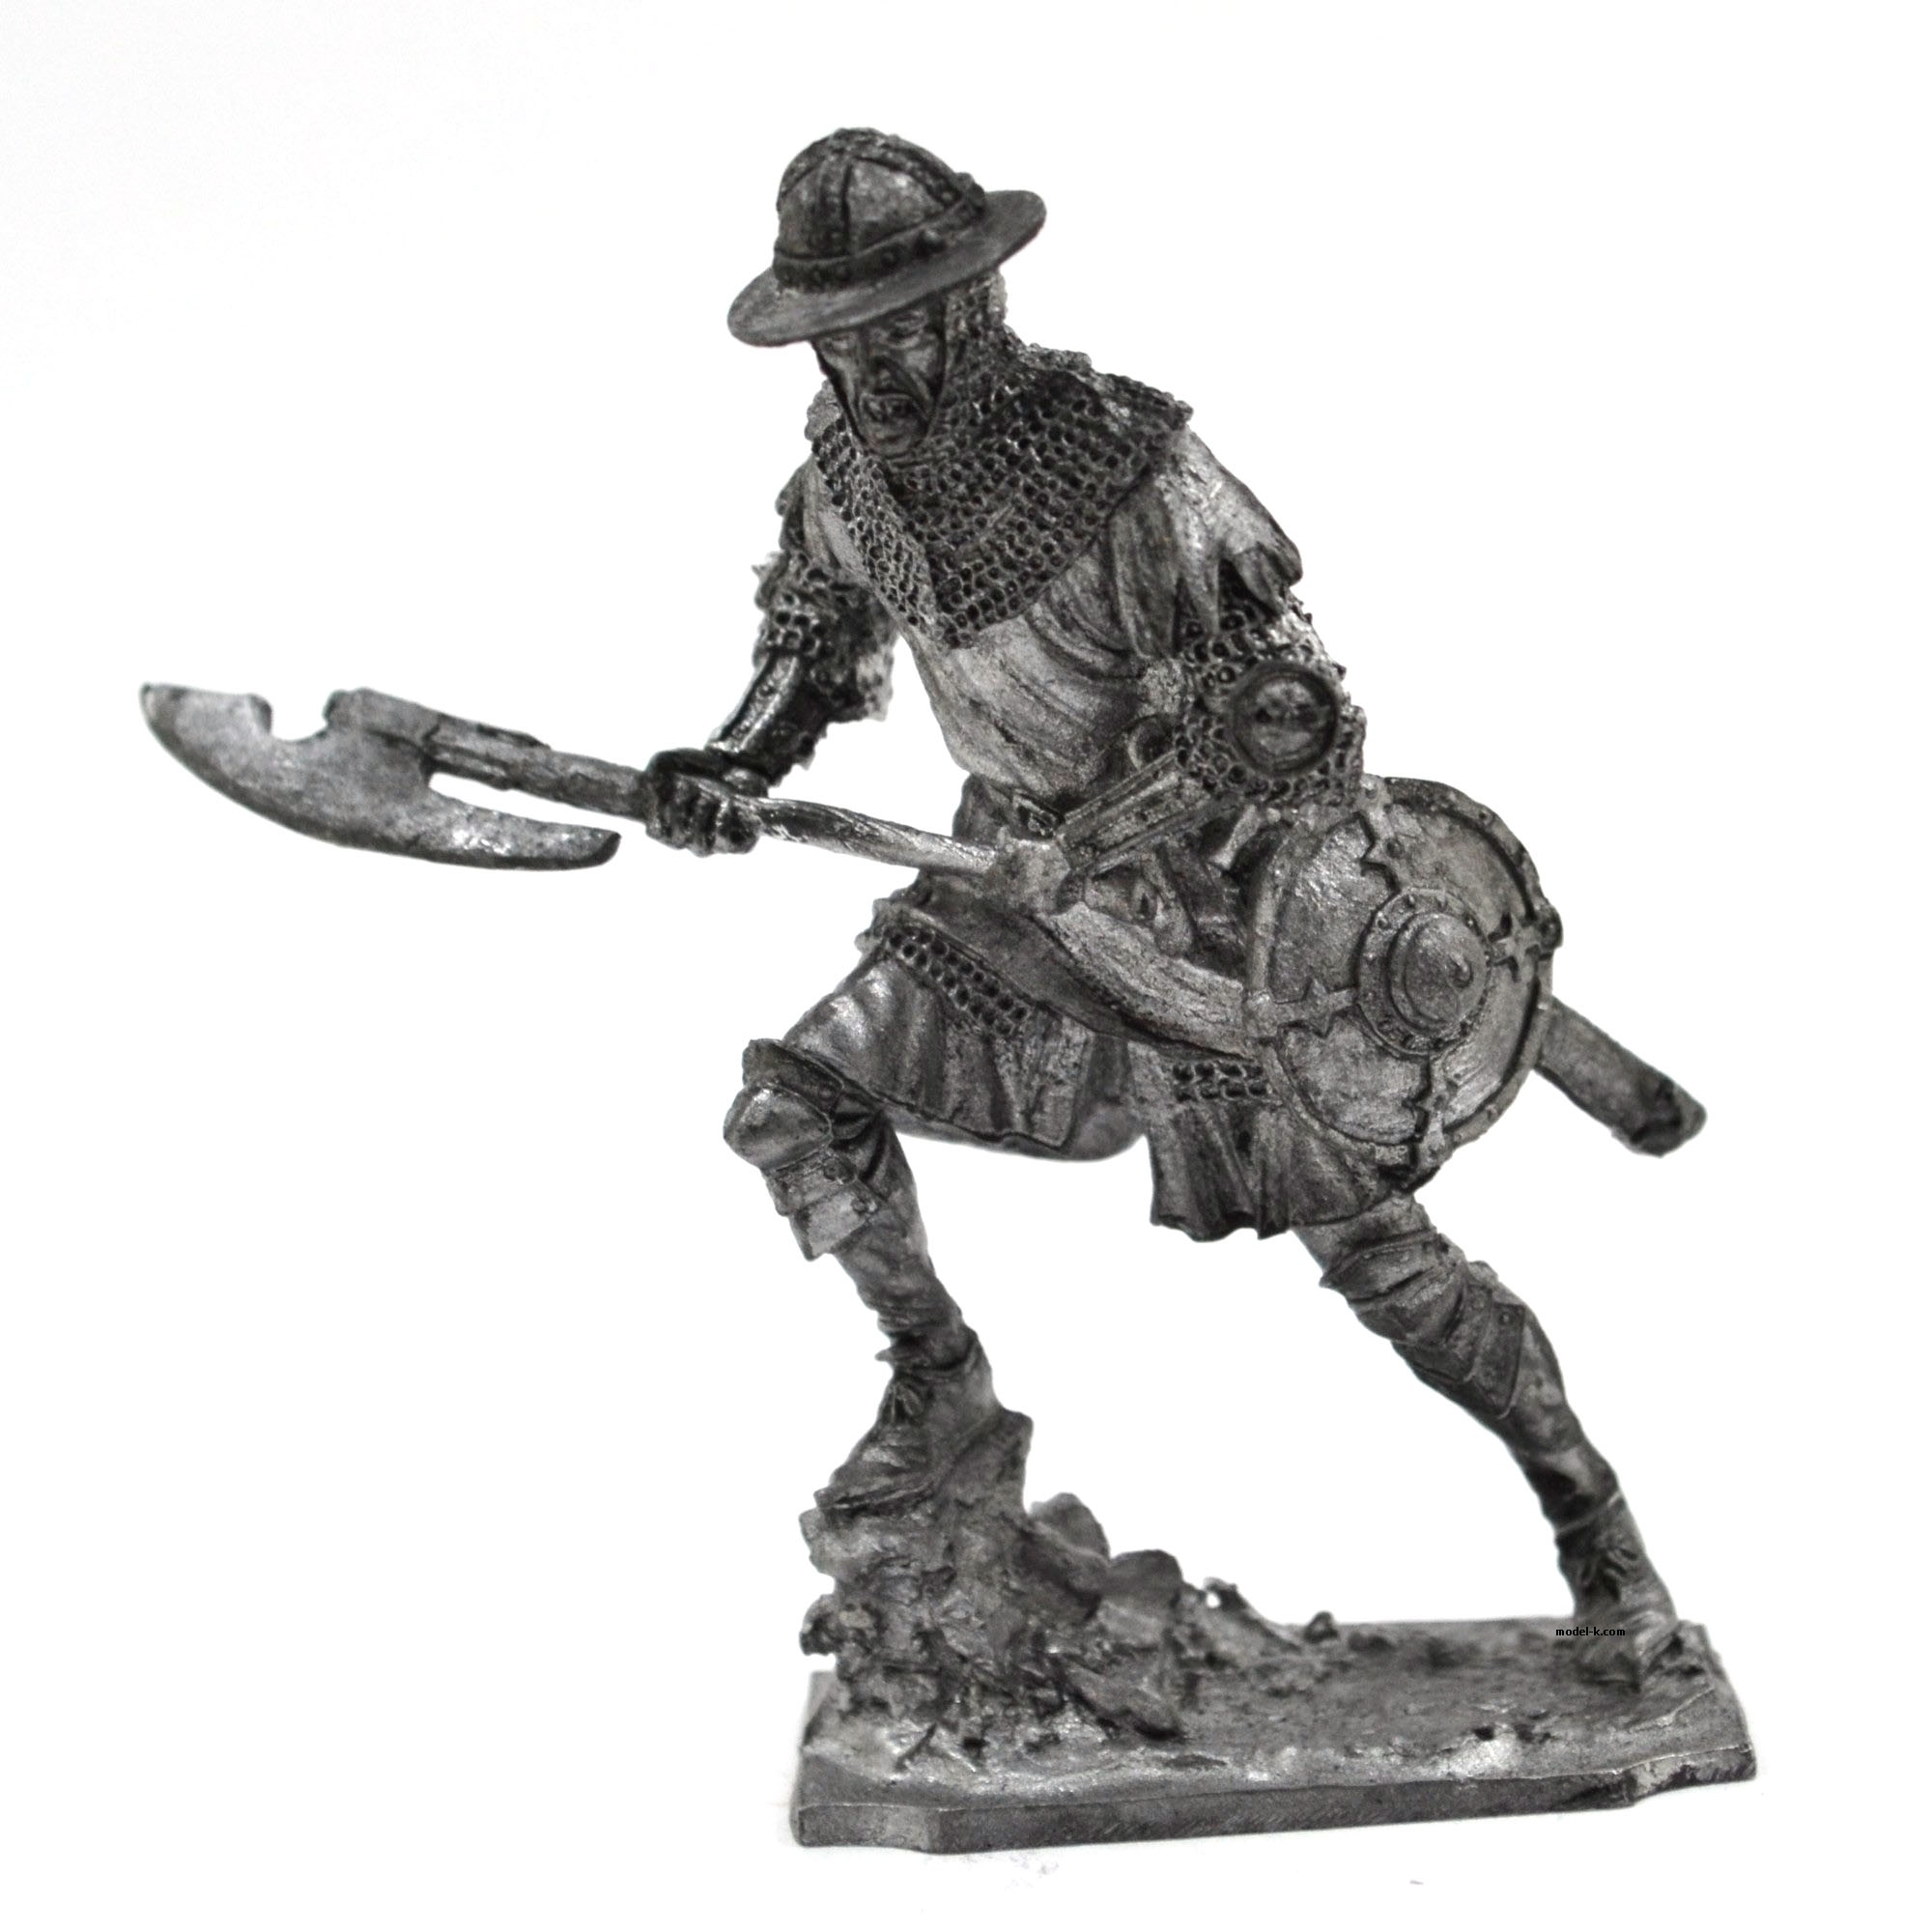 Western European infantry 1:32 scale warrior